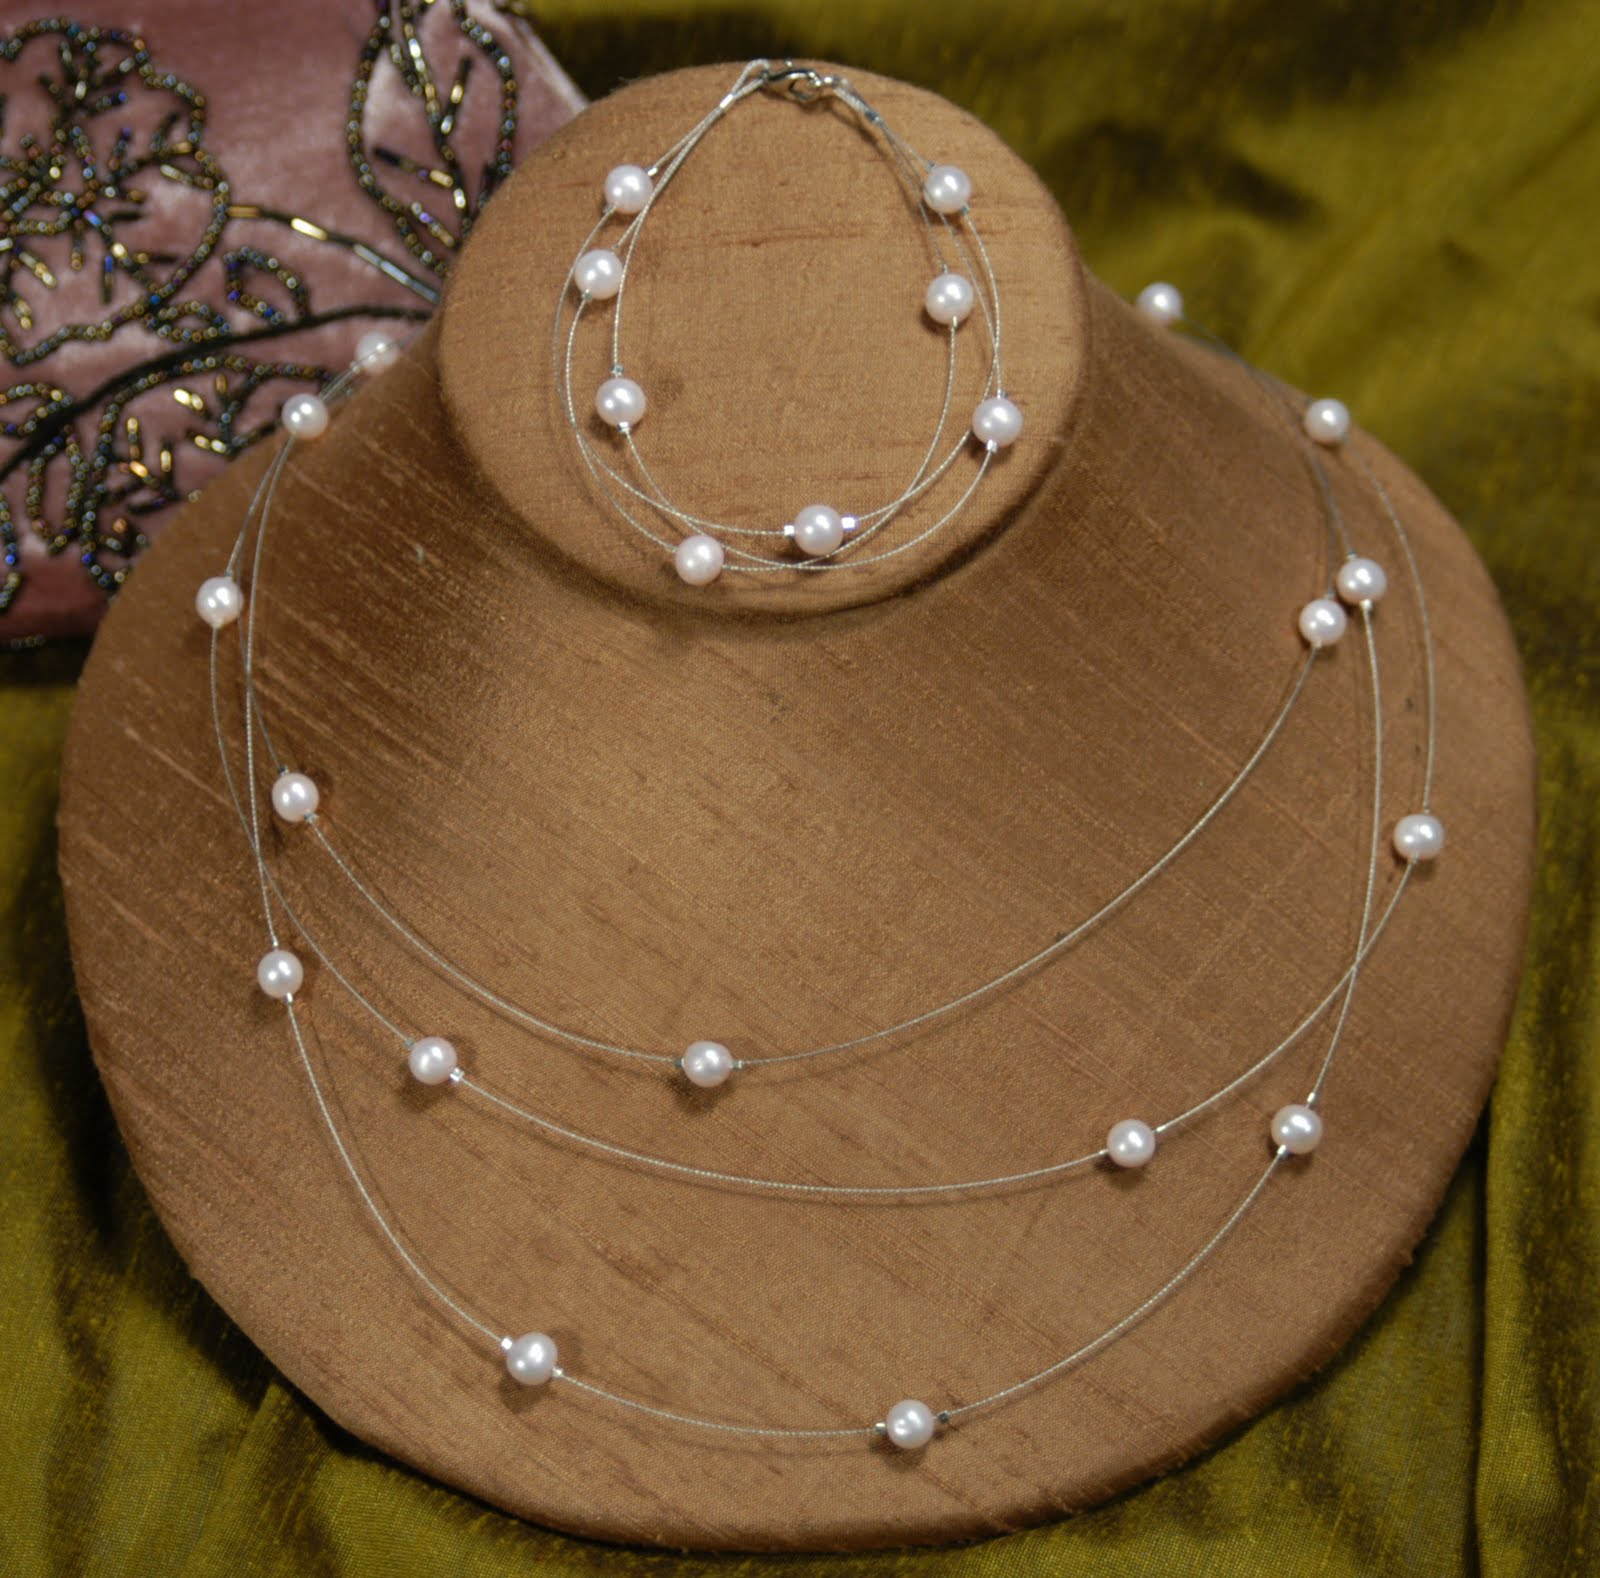 cathie filian make it for floating pearl necklace